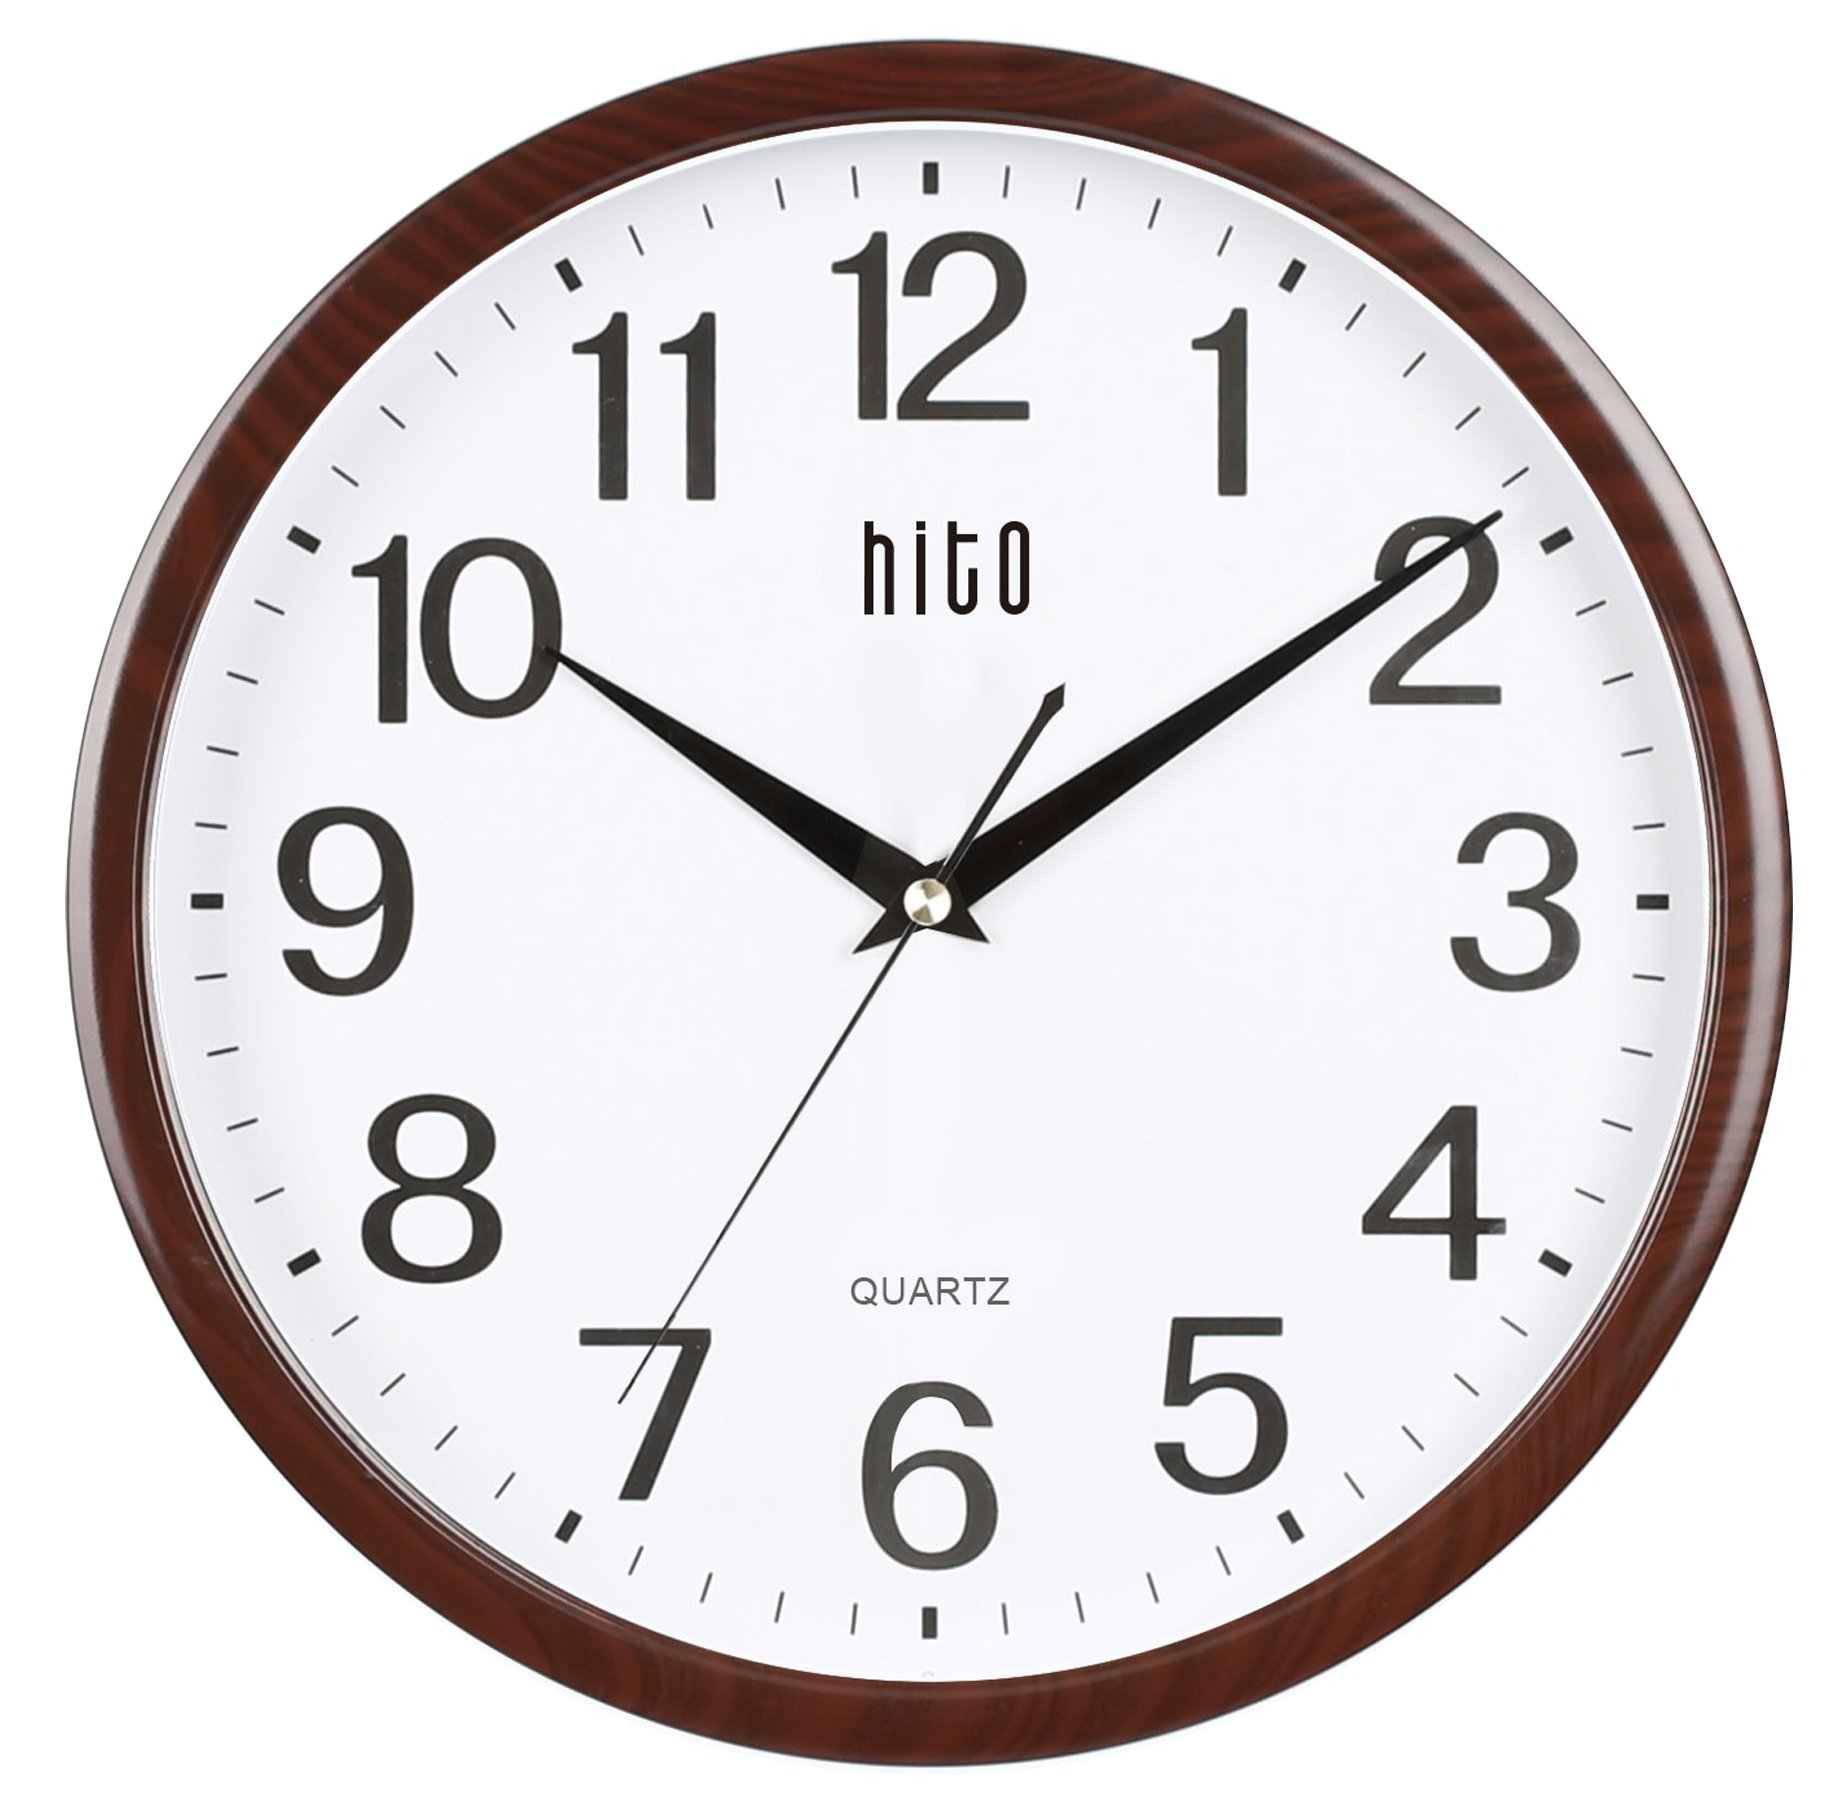 hito Silent Wall Clock Non ticking 12 inch Excellent Accurate Sweep Movement Glass Cover, Decorative for Kitchen, Living Room, Bathroom, Bedroom, Office, Classroom (12 inch, wood grain) by hito (Image #1)